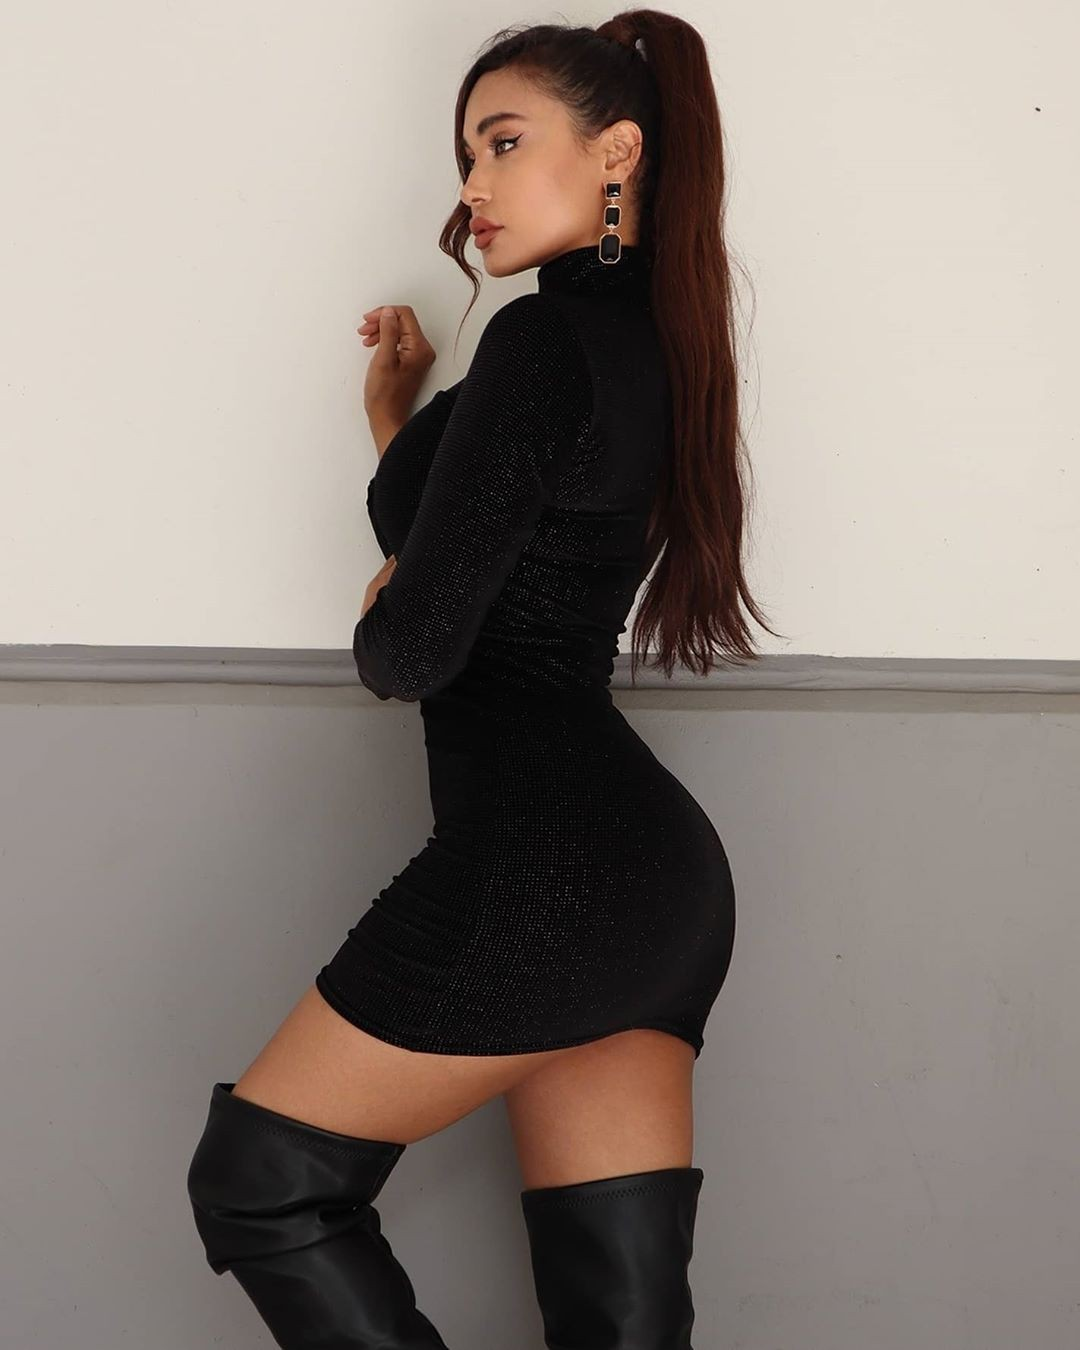 black outfits for girls with stocking, female thighs, legs pic